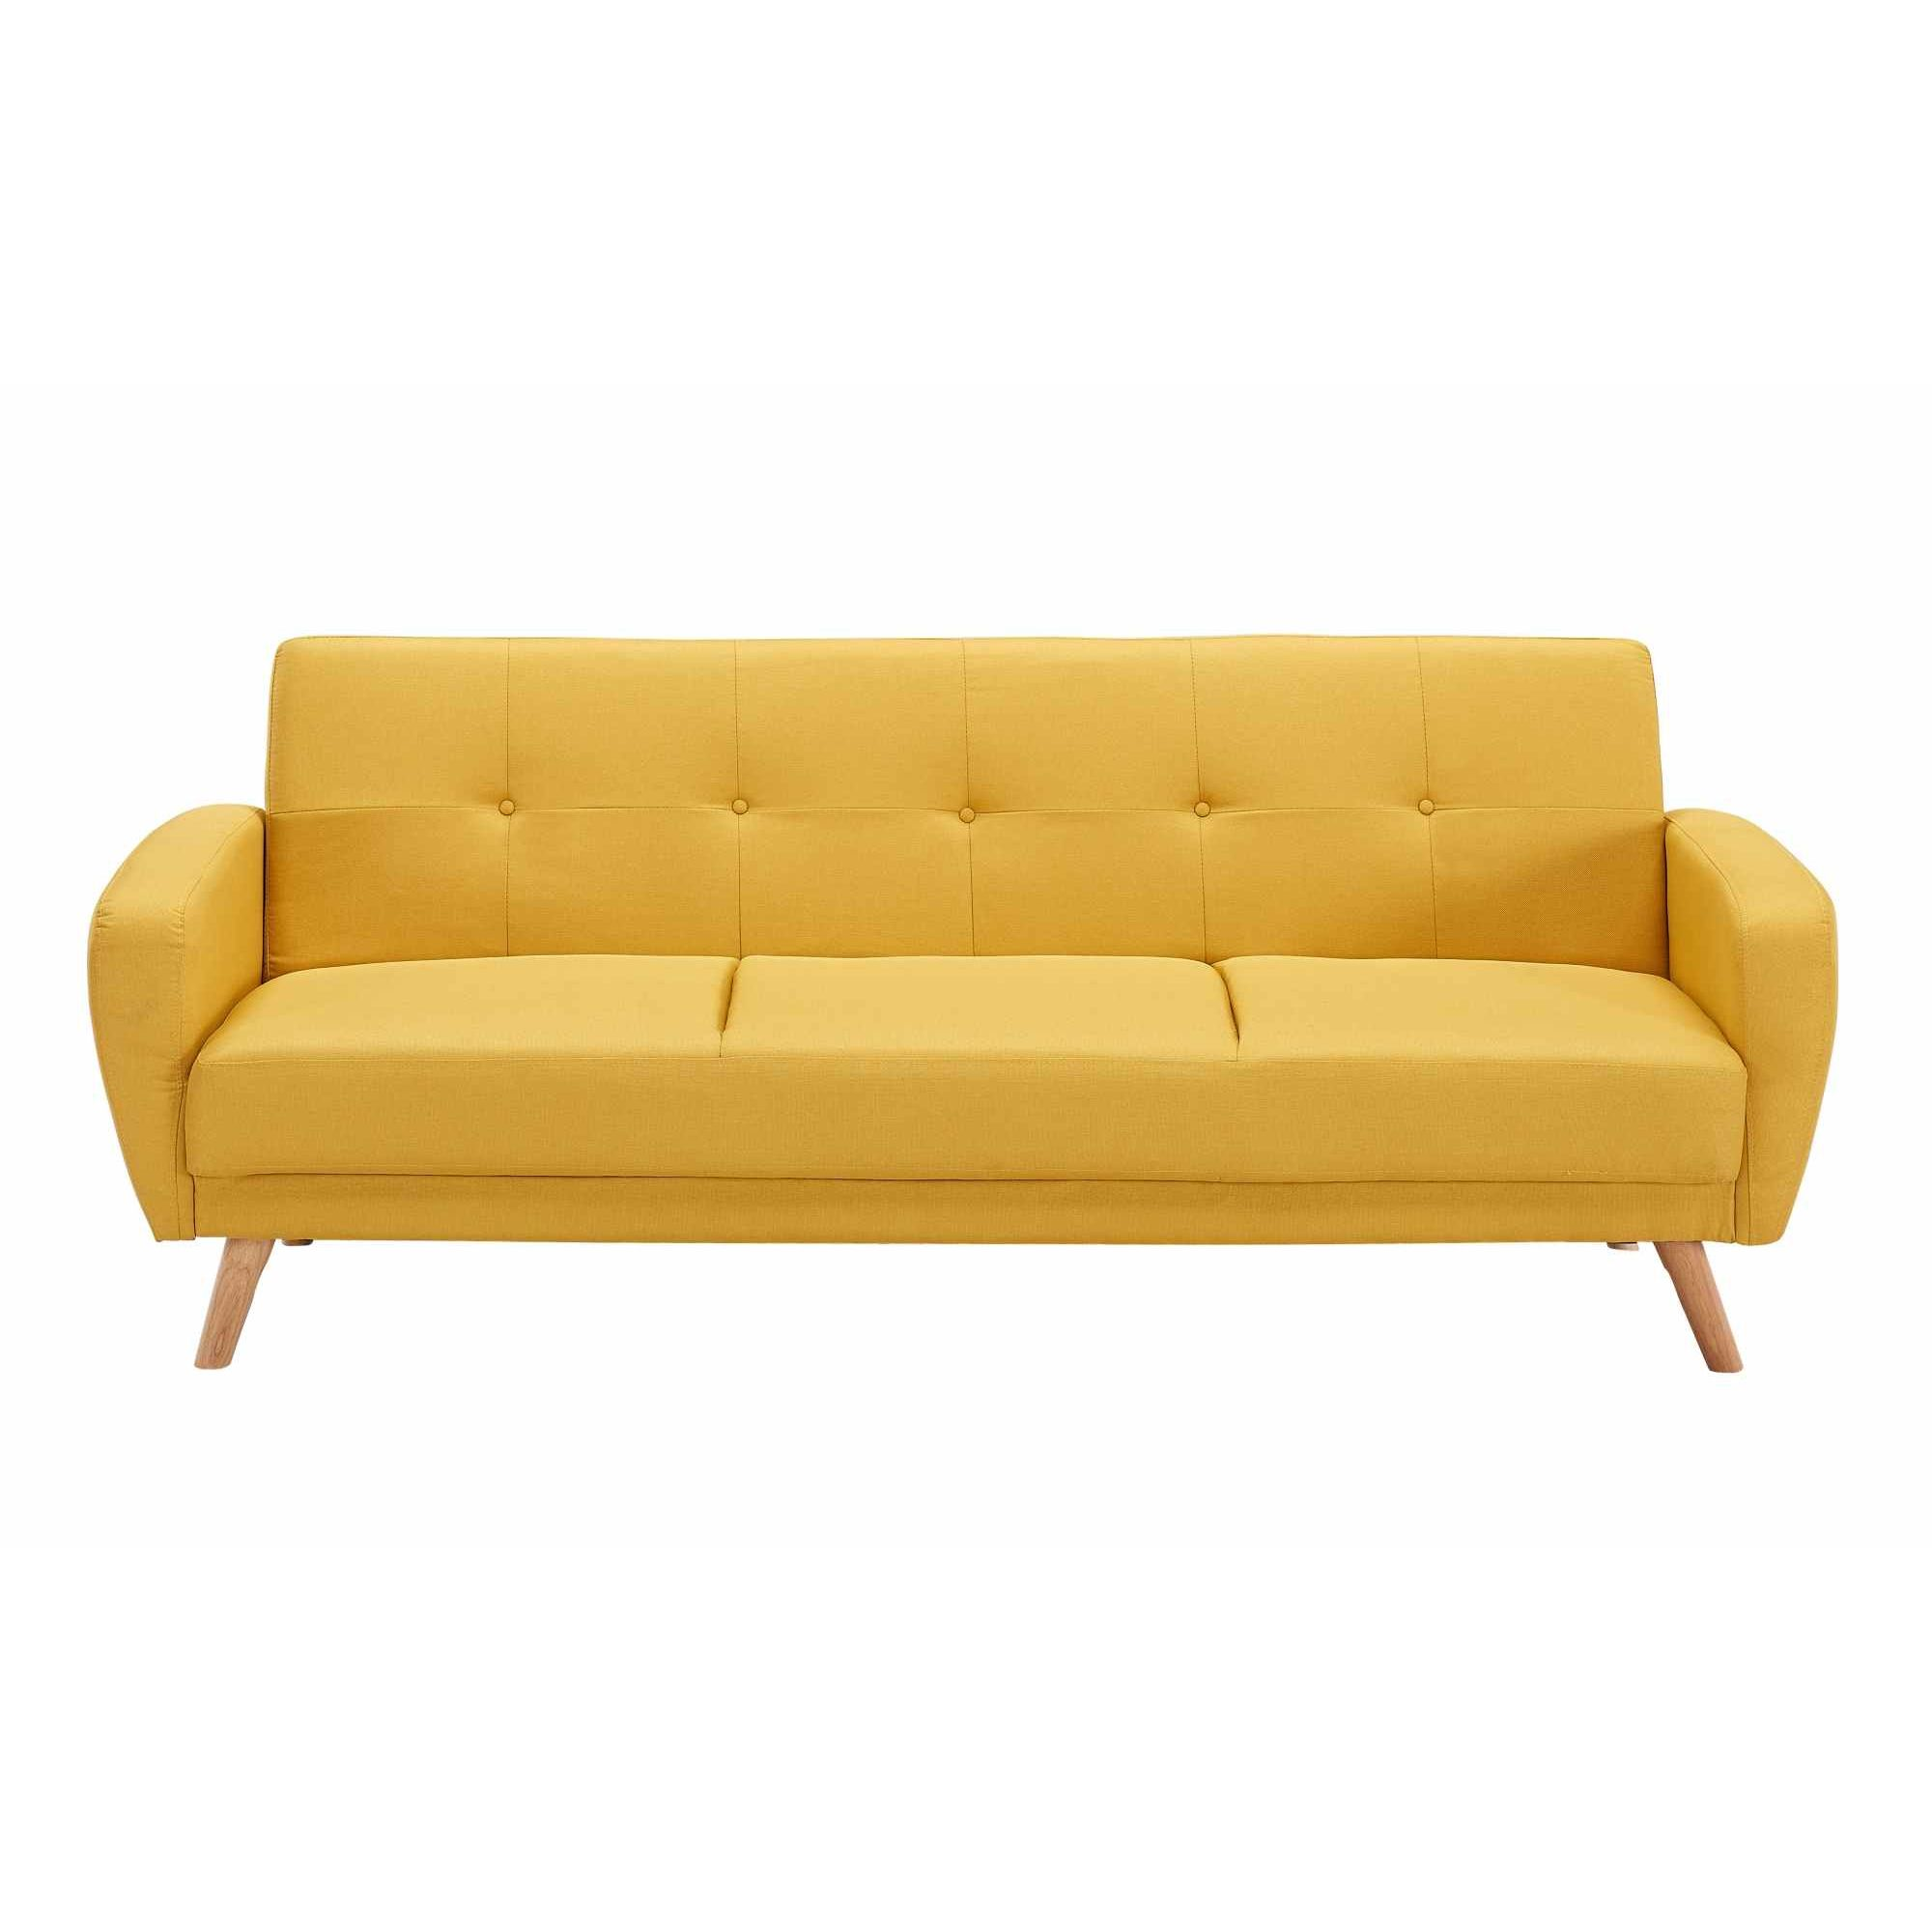 Deco Scandinave Jaune Deco In Paris 9 Canape 3 Places Convertible Scandinave